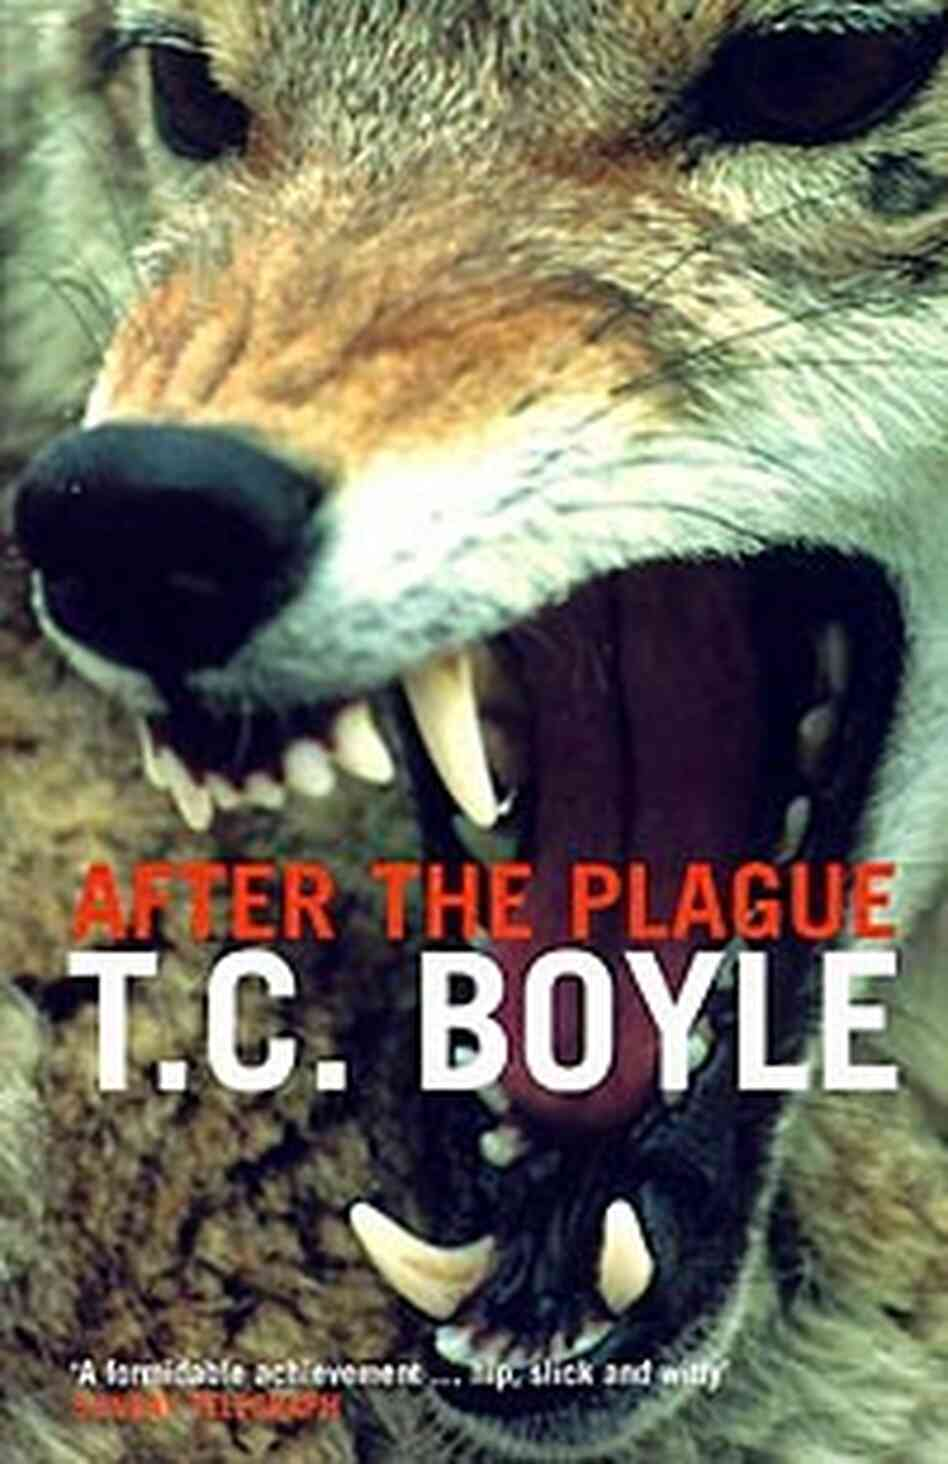 Cover for T.C. Boyle's 'After the Plague'